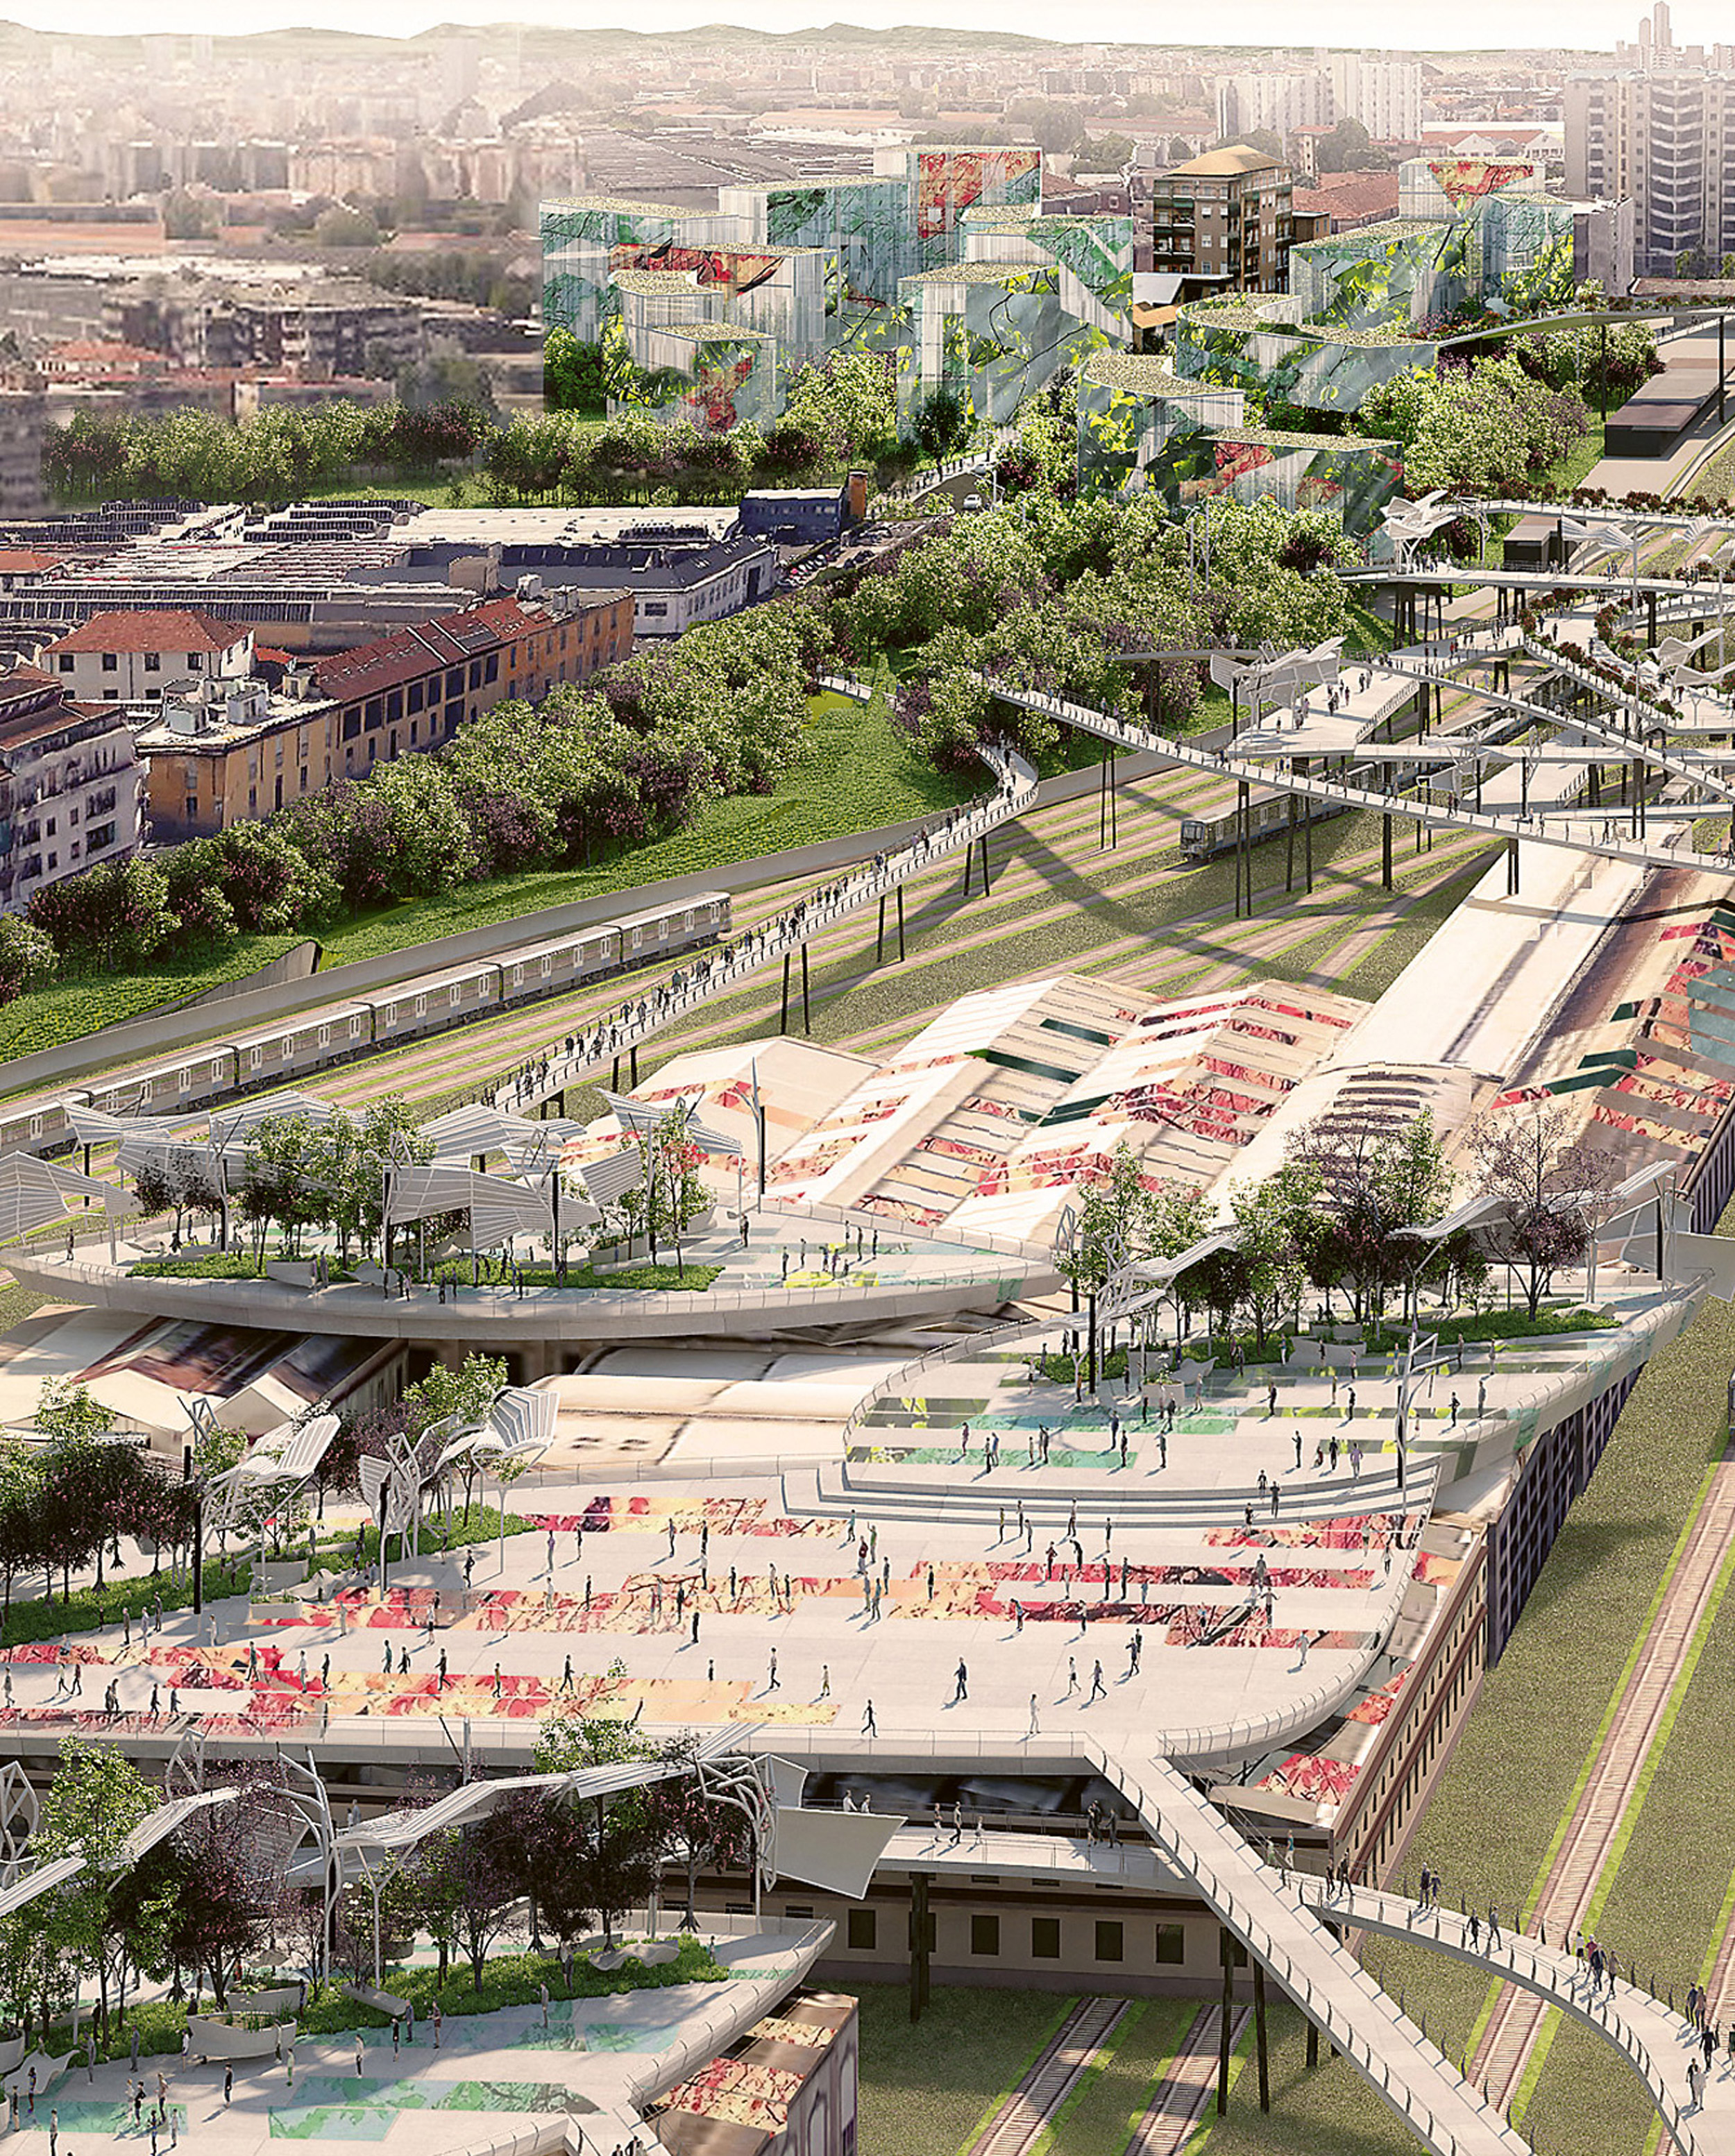 A new vision for Milan's disused railway yards, Milan